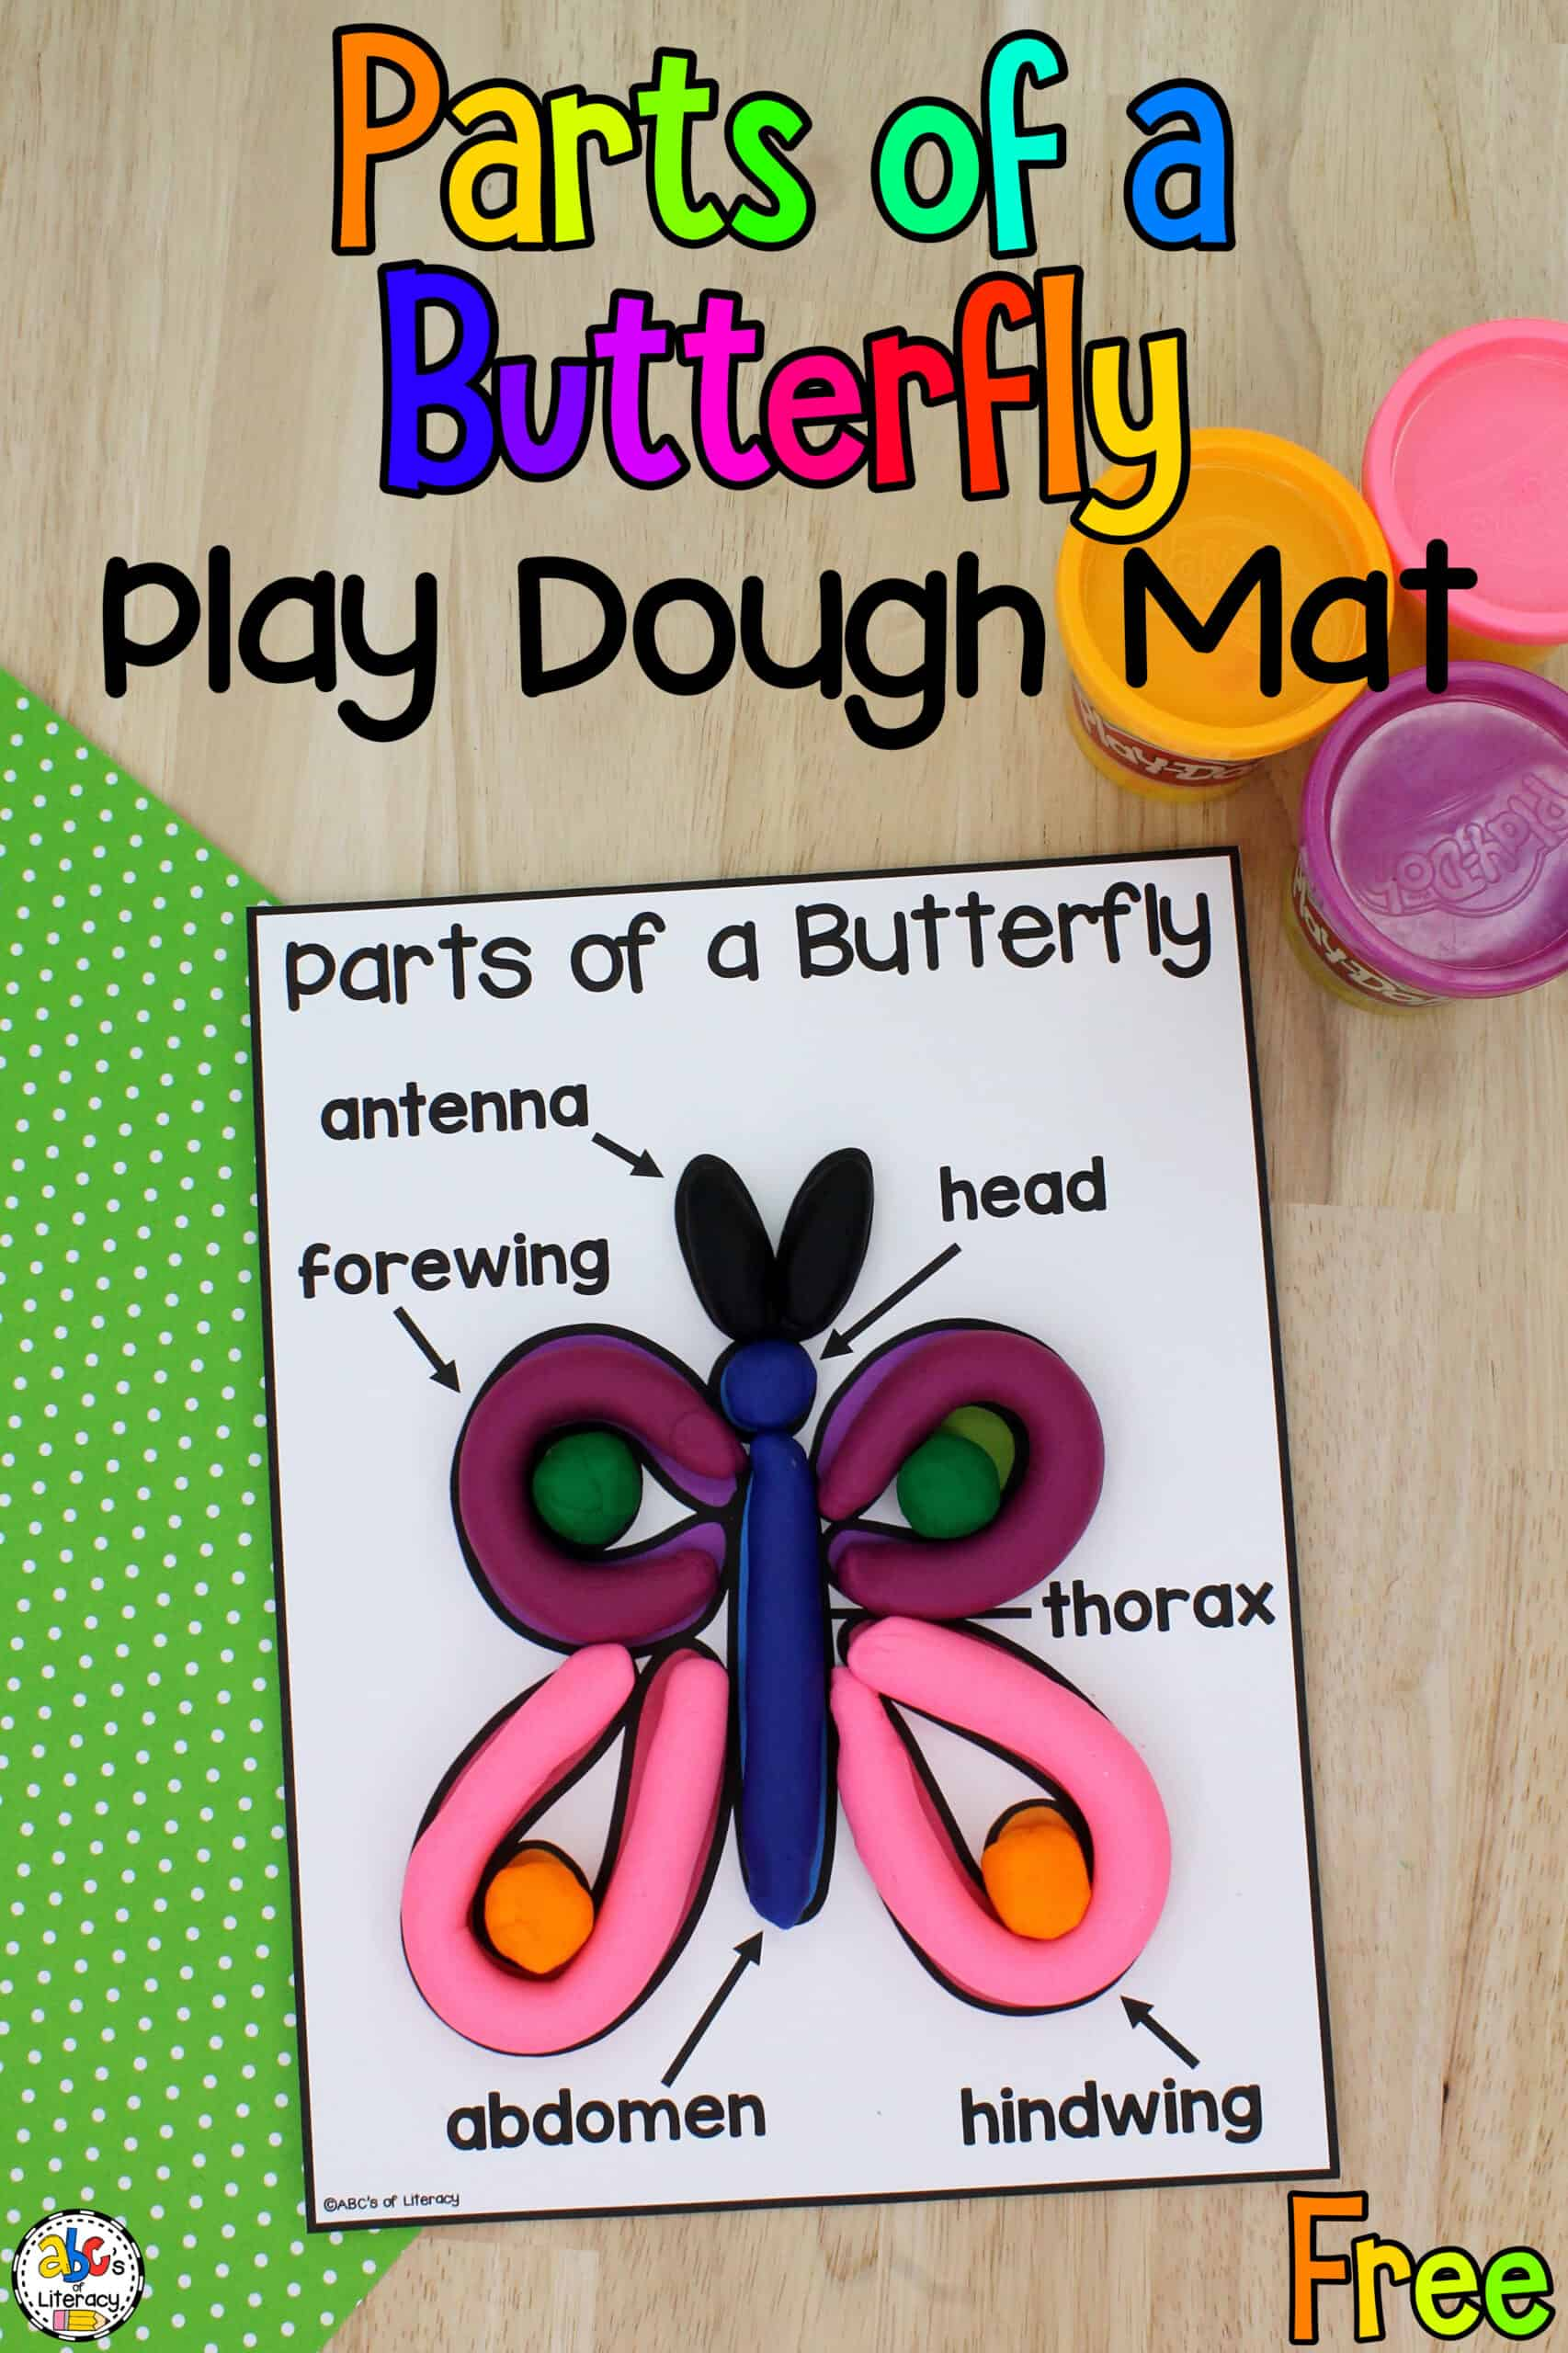 Parts of a Butterfly Activities for Kids